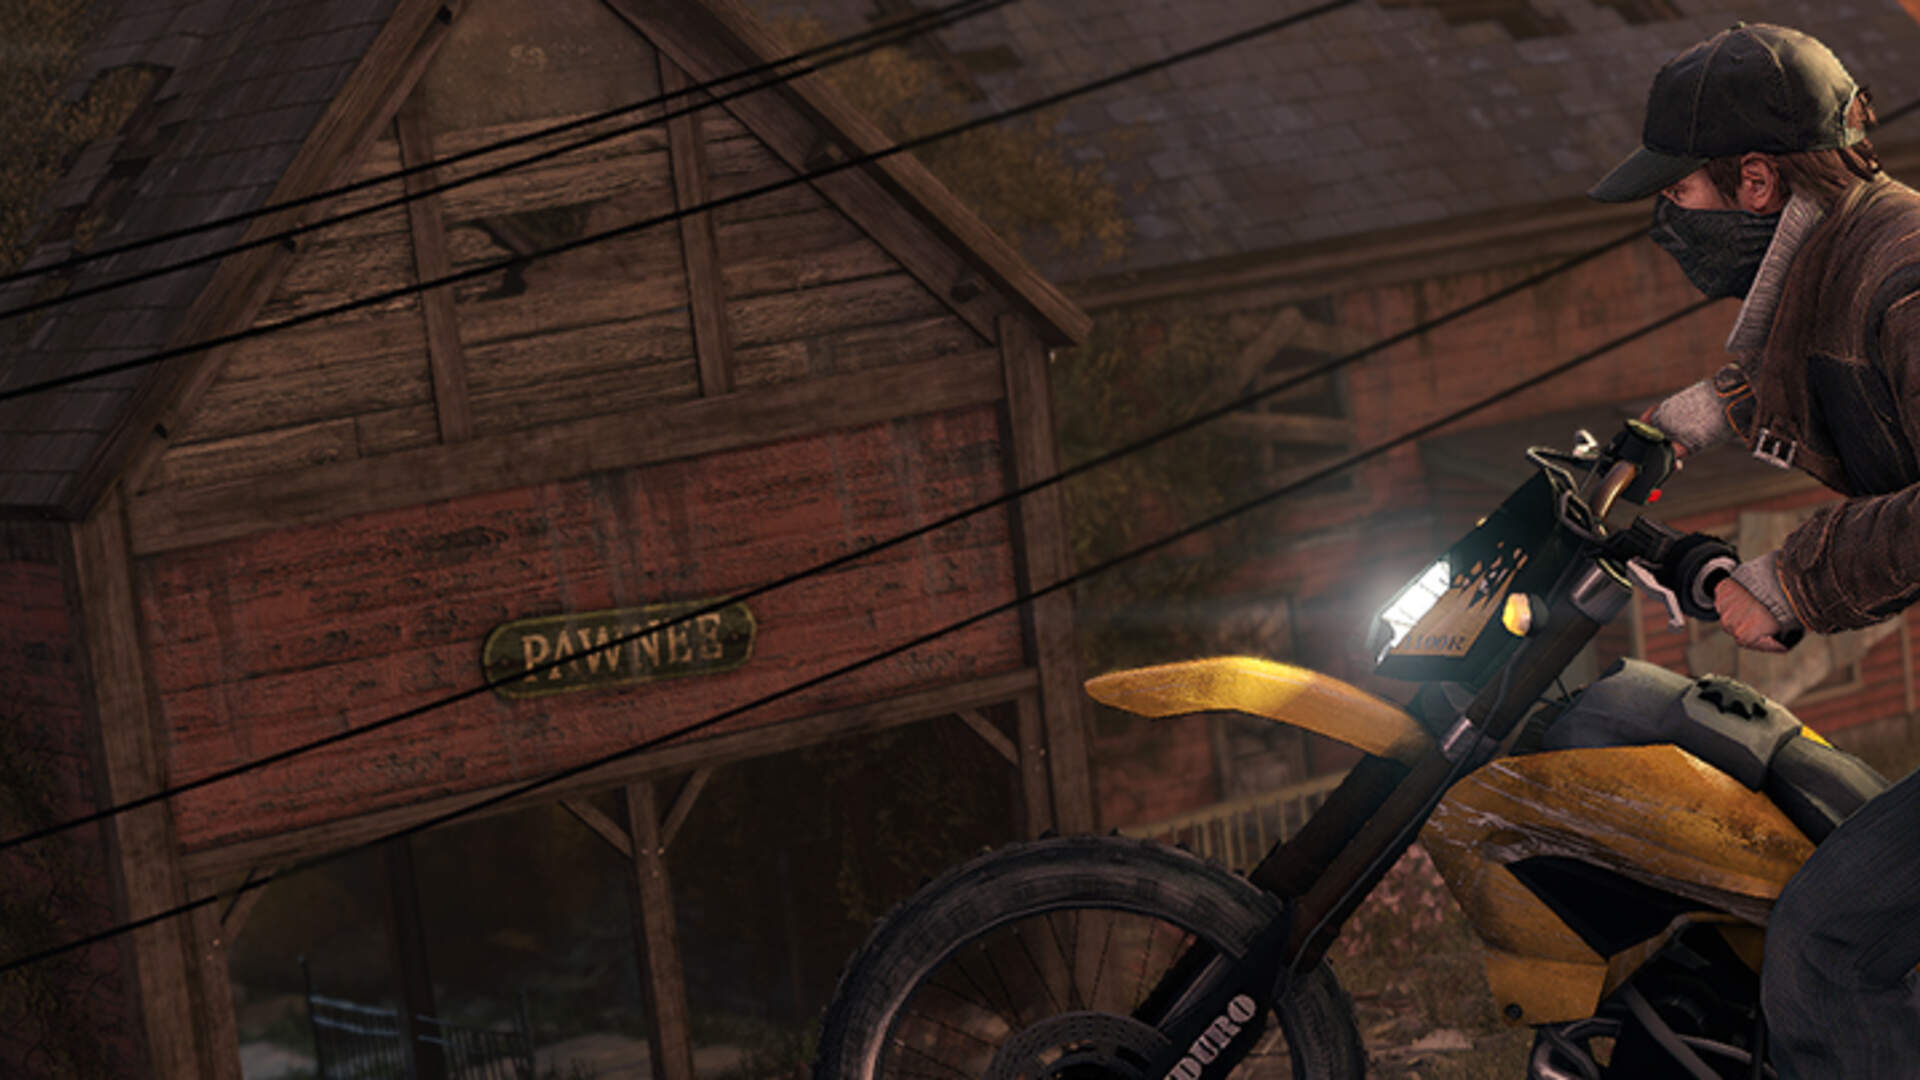 Watch Dogs Guide: Best Skills to Take, Earn Money Fast, Mission and Driving Strategies